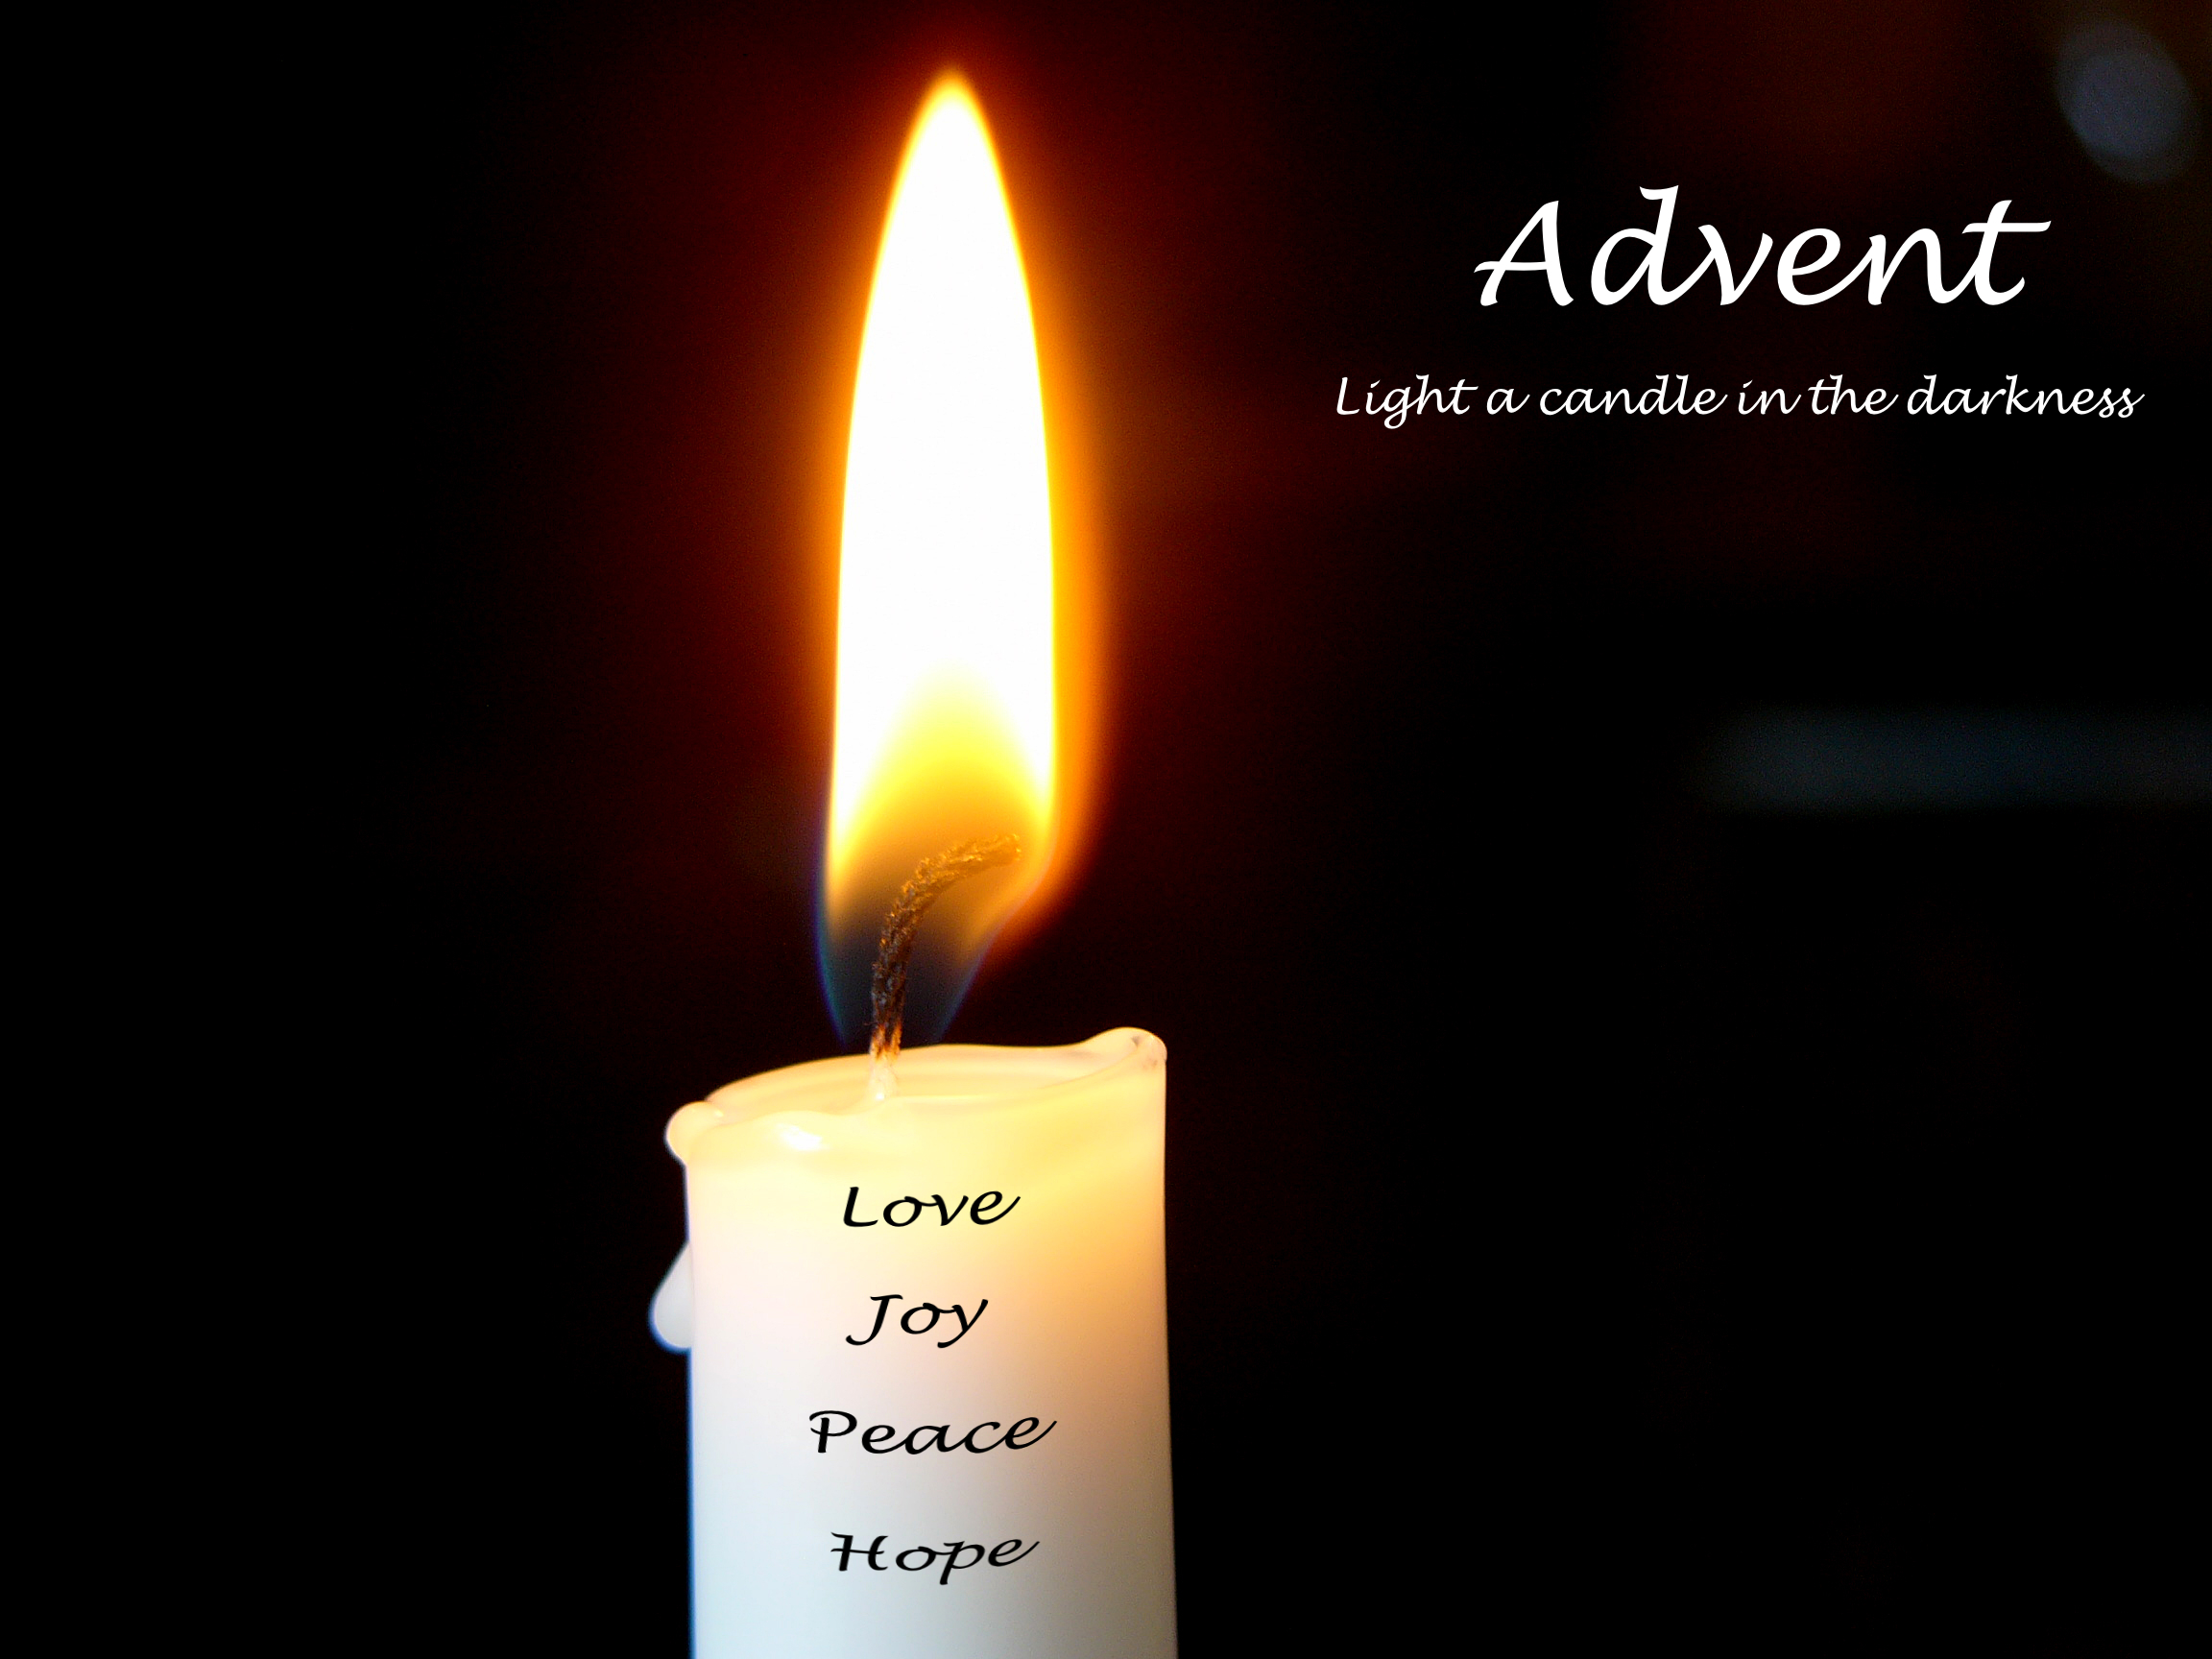 Light A Candle In The Darkness Revster39s Ramblings & Lighting Of The Advent Candles - Democraciaejustica